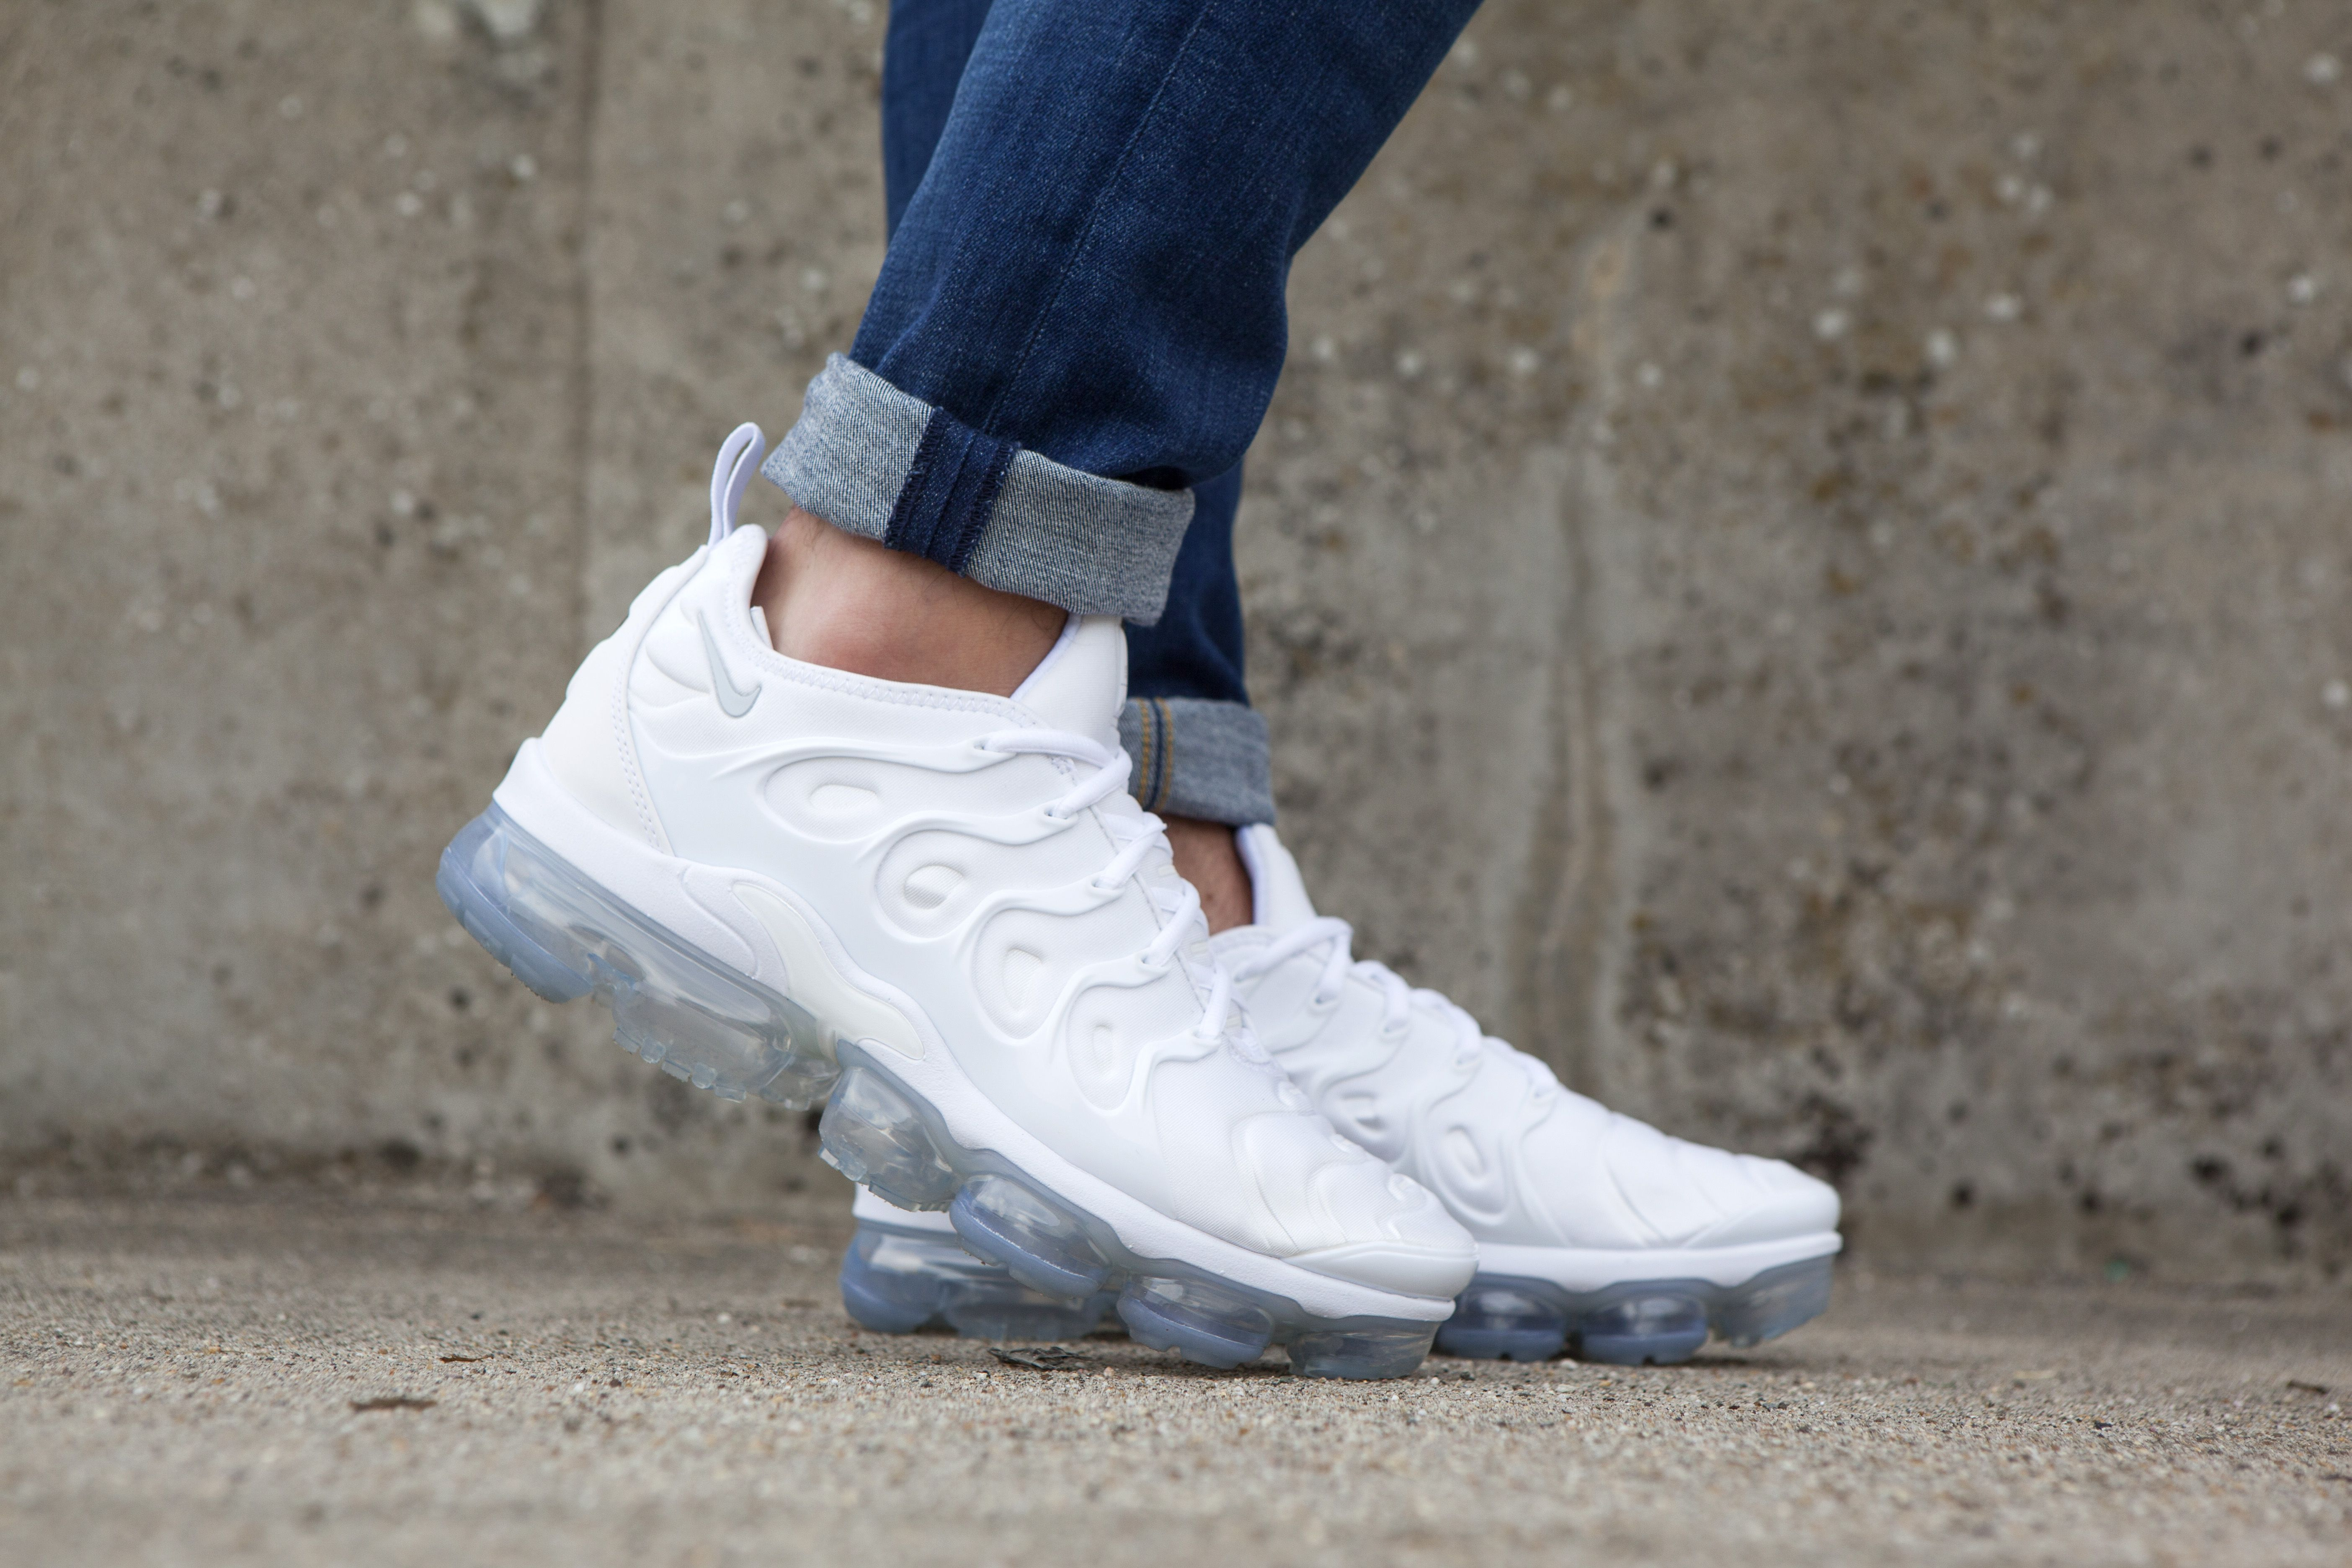 nike air max tn afterpay nz|Free delivery!